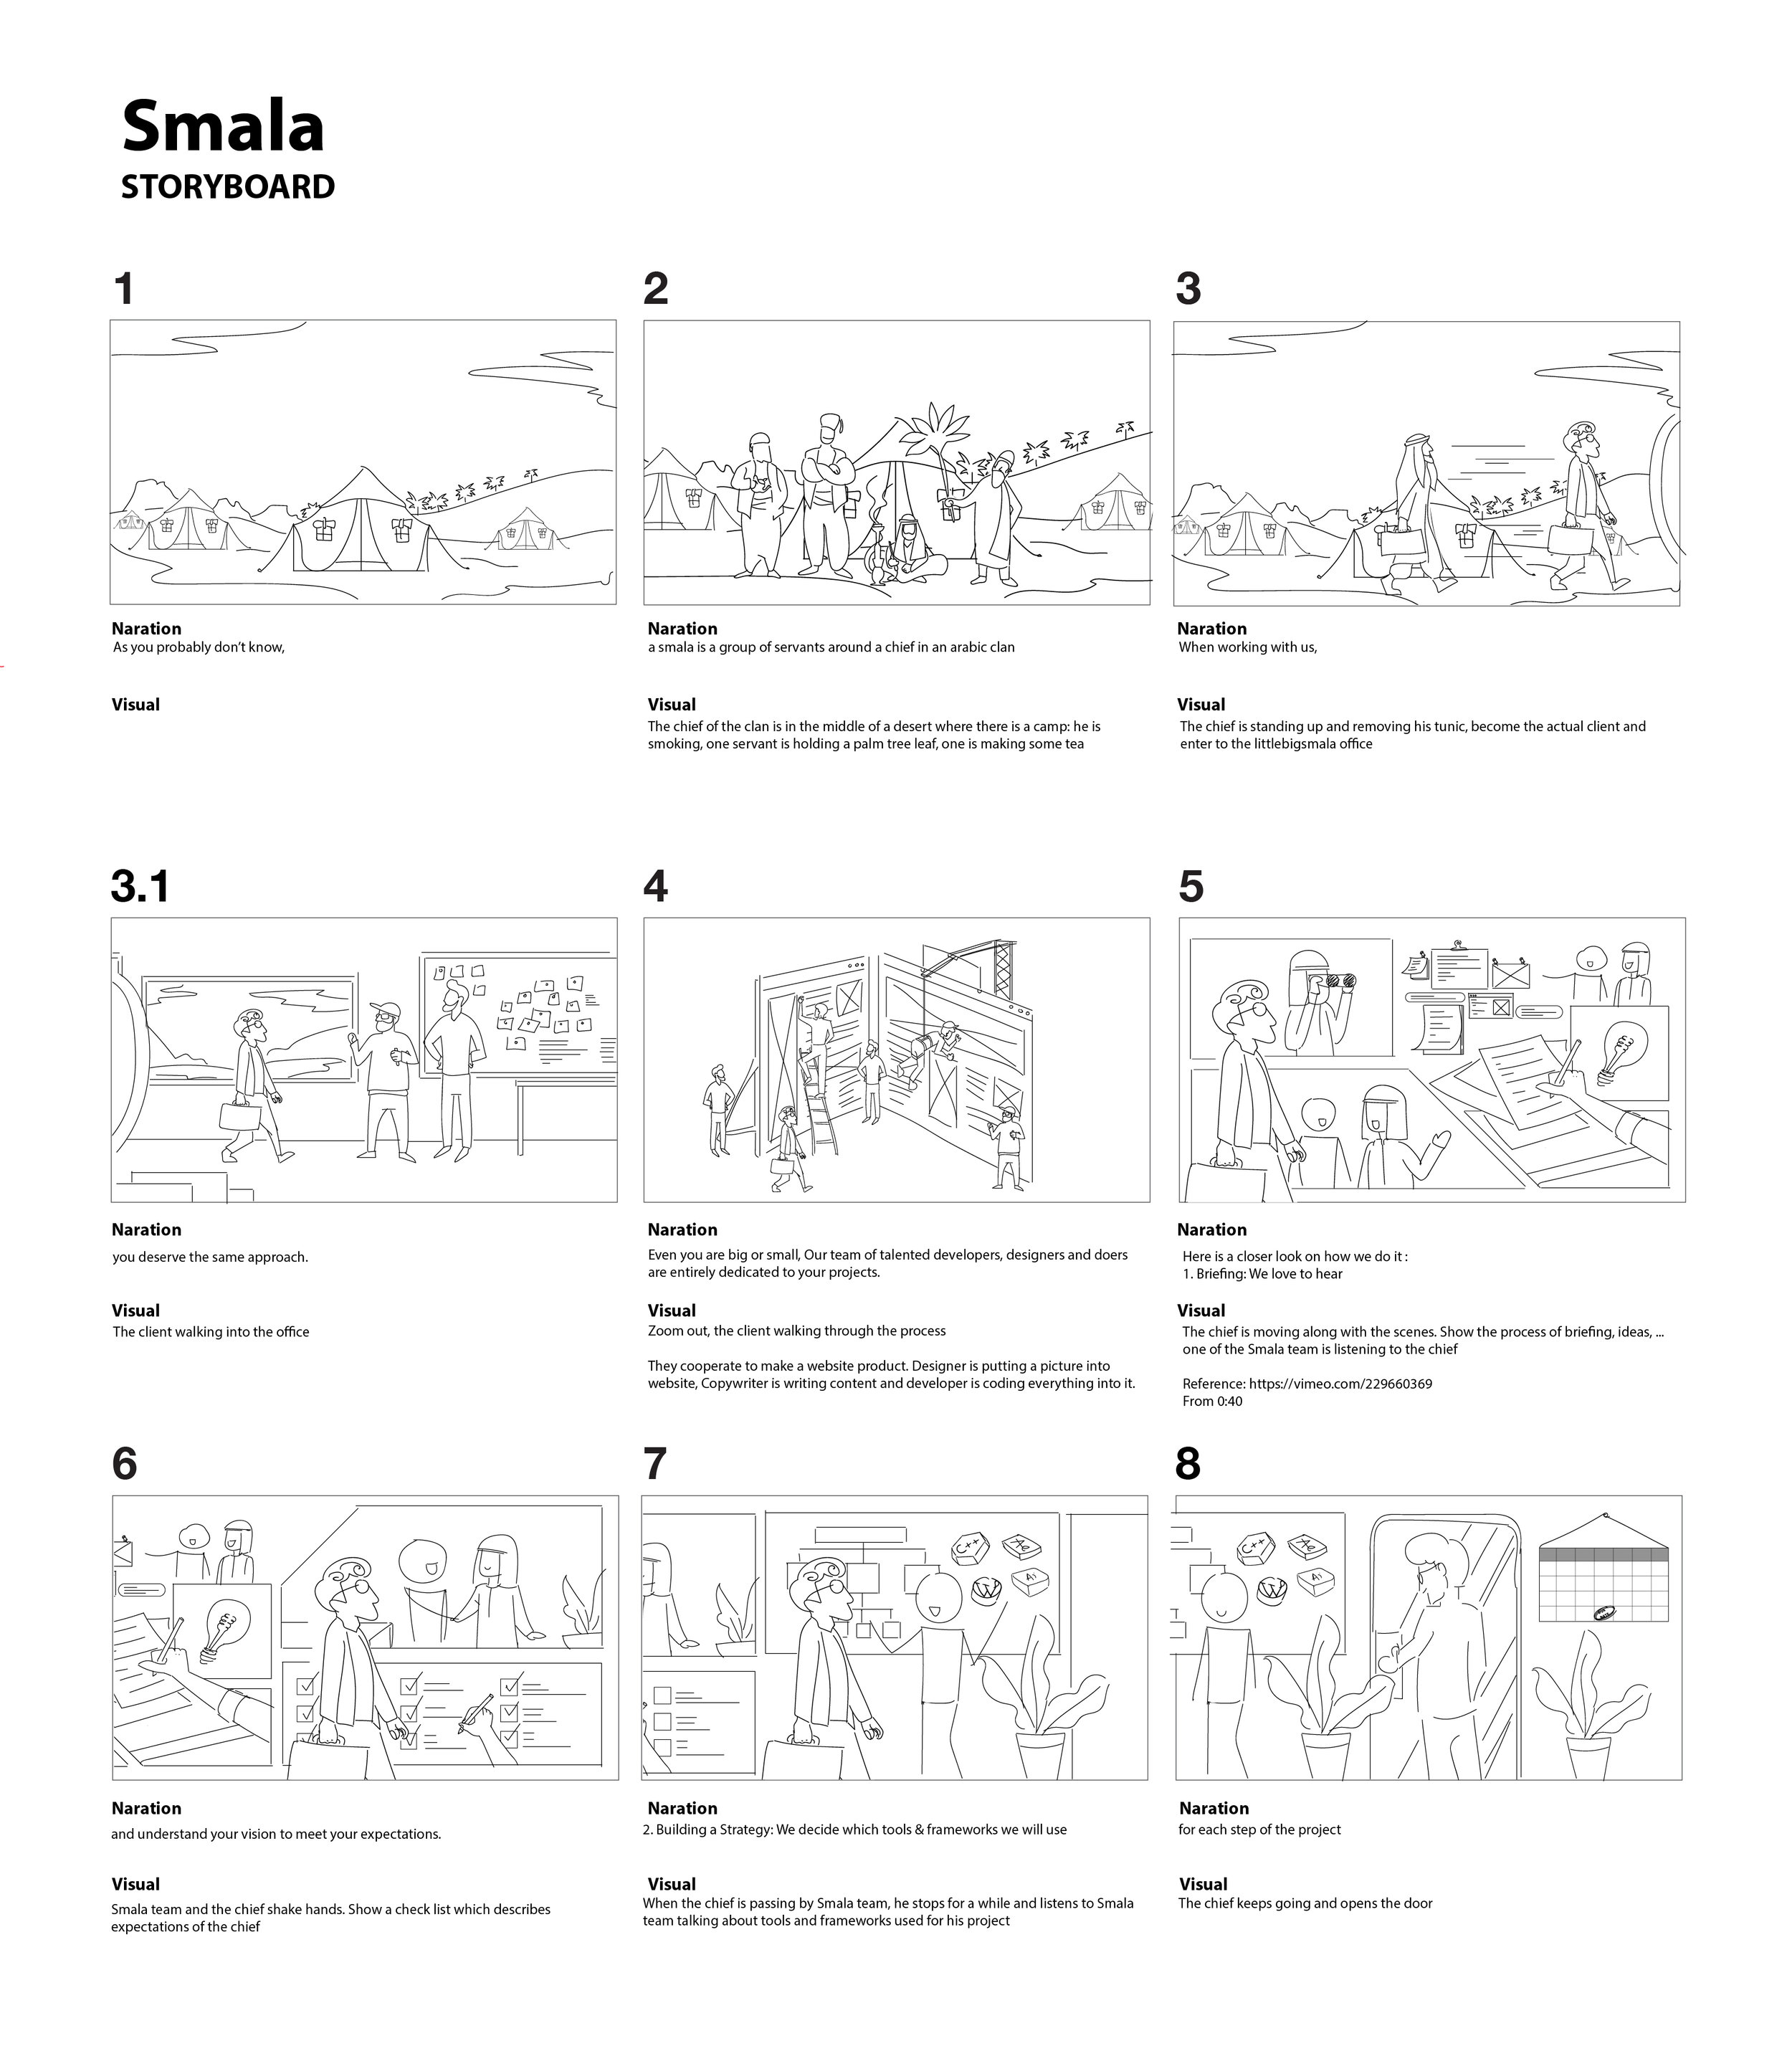 Smala_Storyboard_Sketch_180518-01.jpg